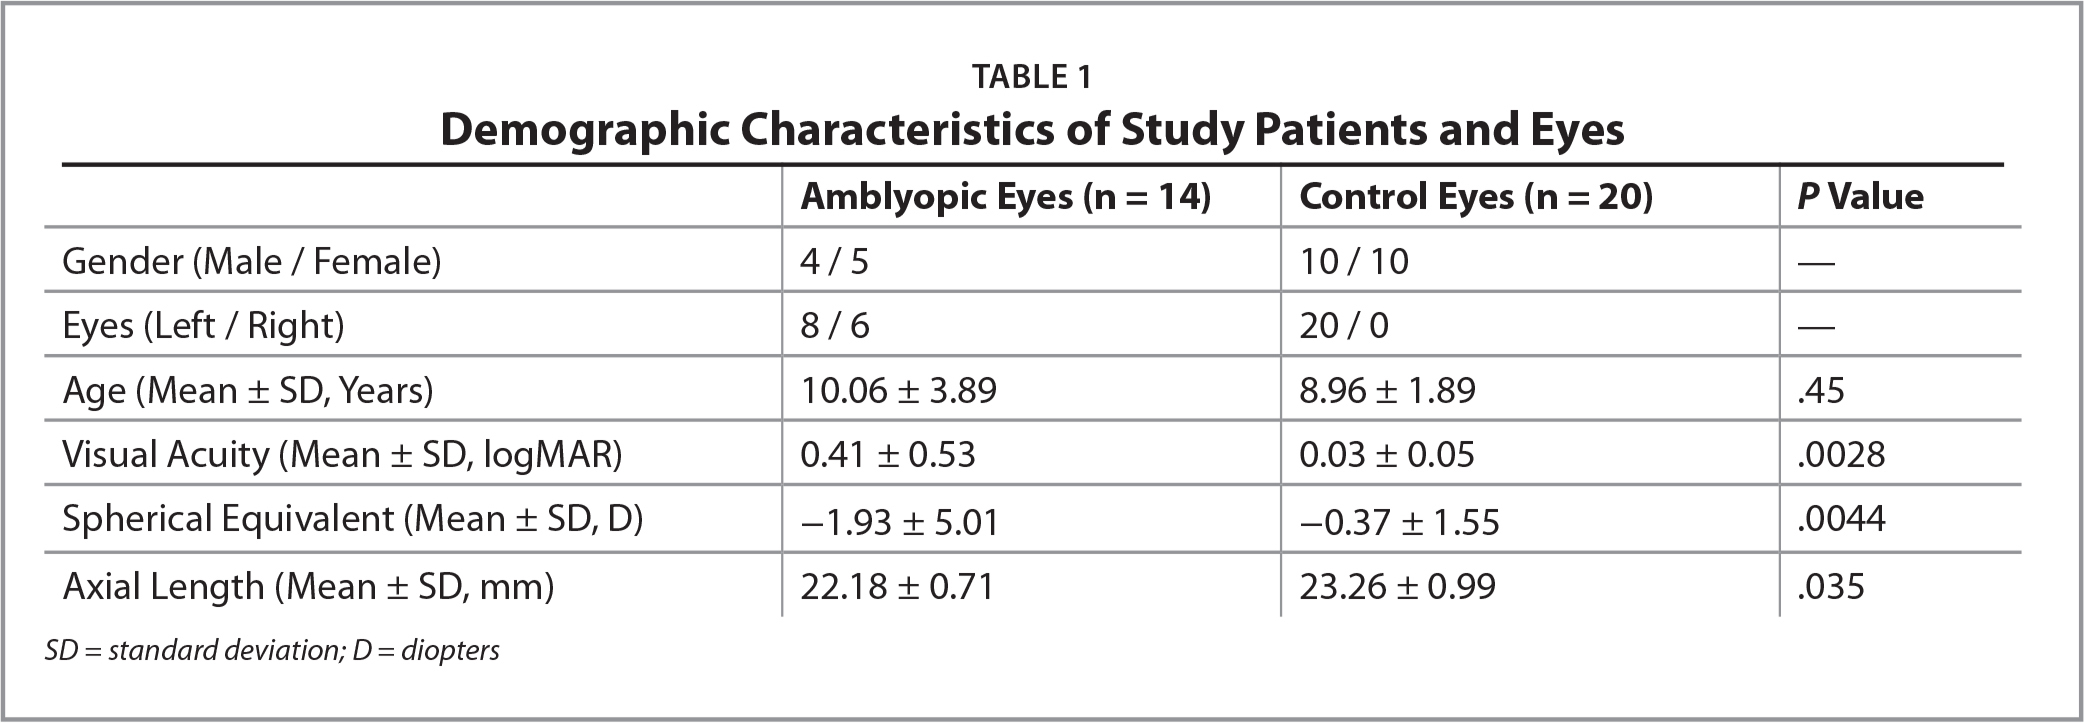 Demographic Characteristics of Study Patients and Eyes